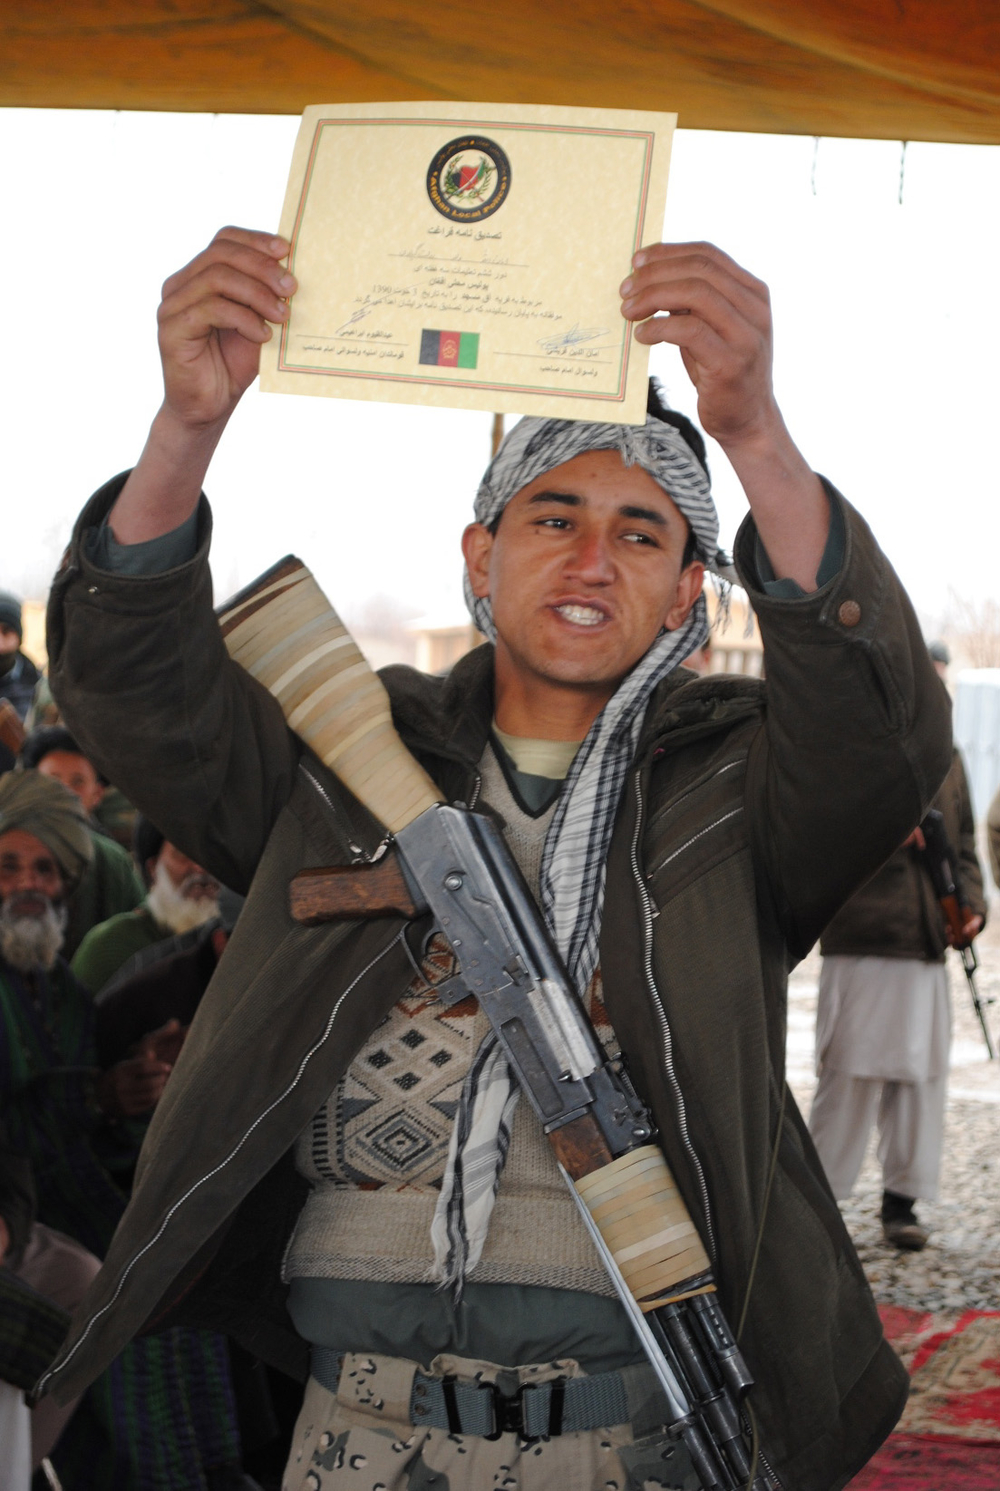 Afghan Local Police (ALP) graduates hold up certificates in Imam Saheb, the second district in Kunduz to undergo ALP training. Post-NATO withdrawal ALP and other militia are becoming increasingly abusive